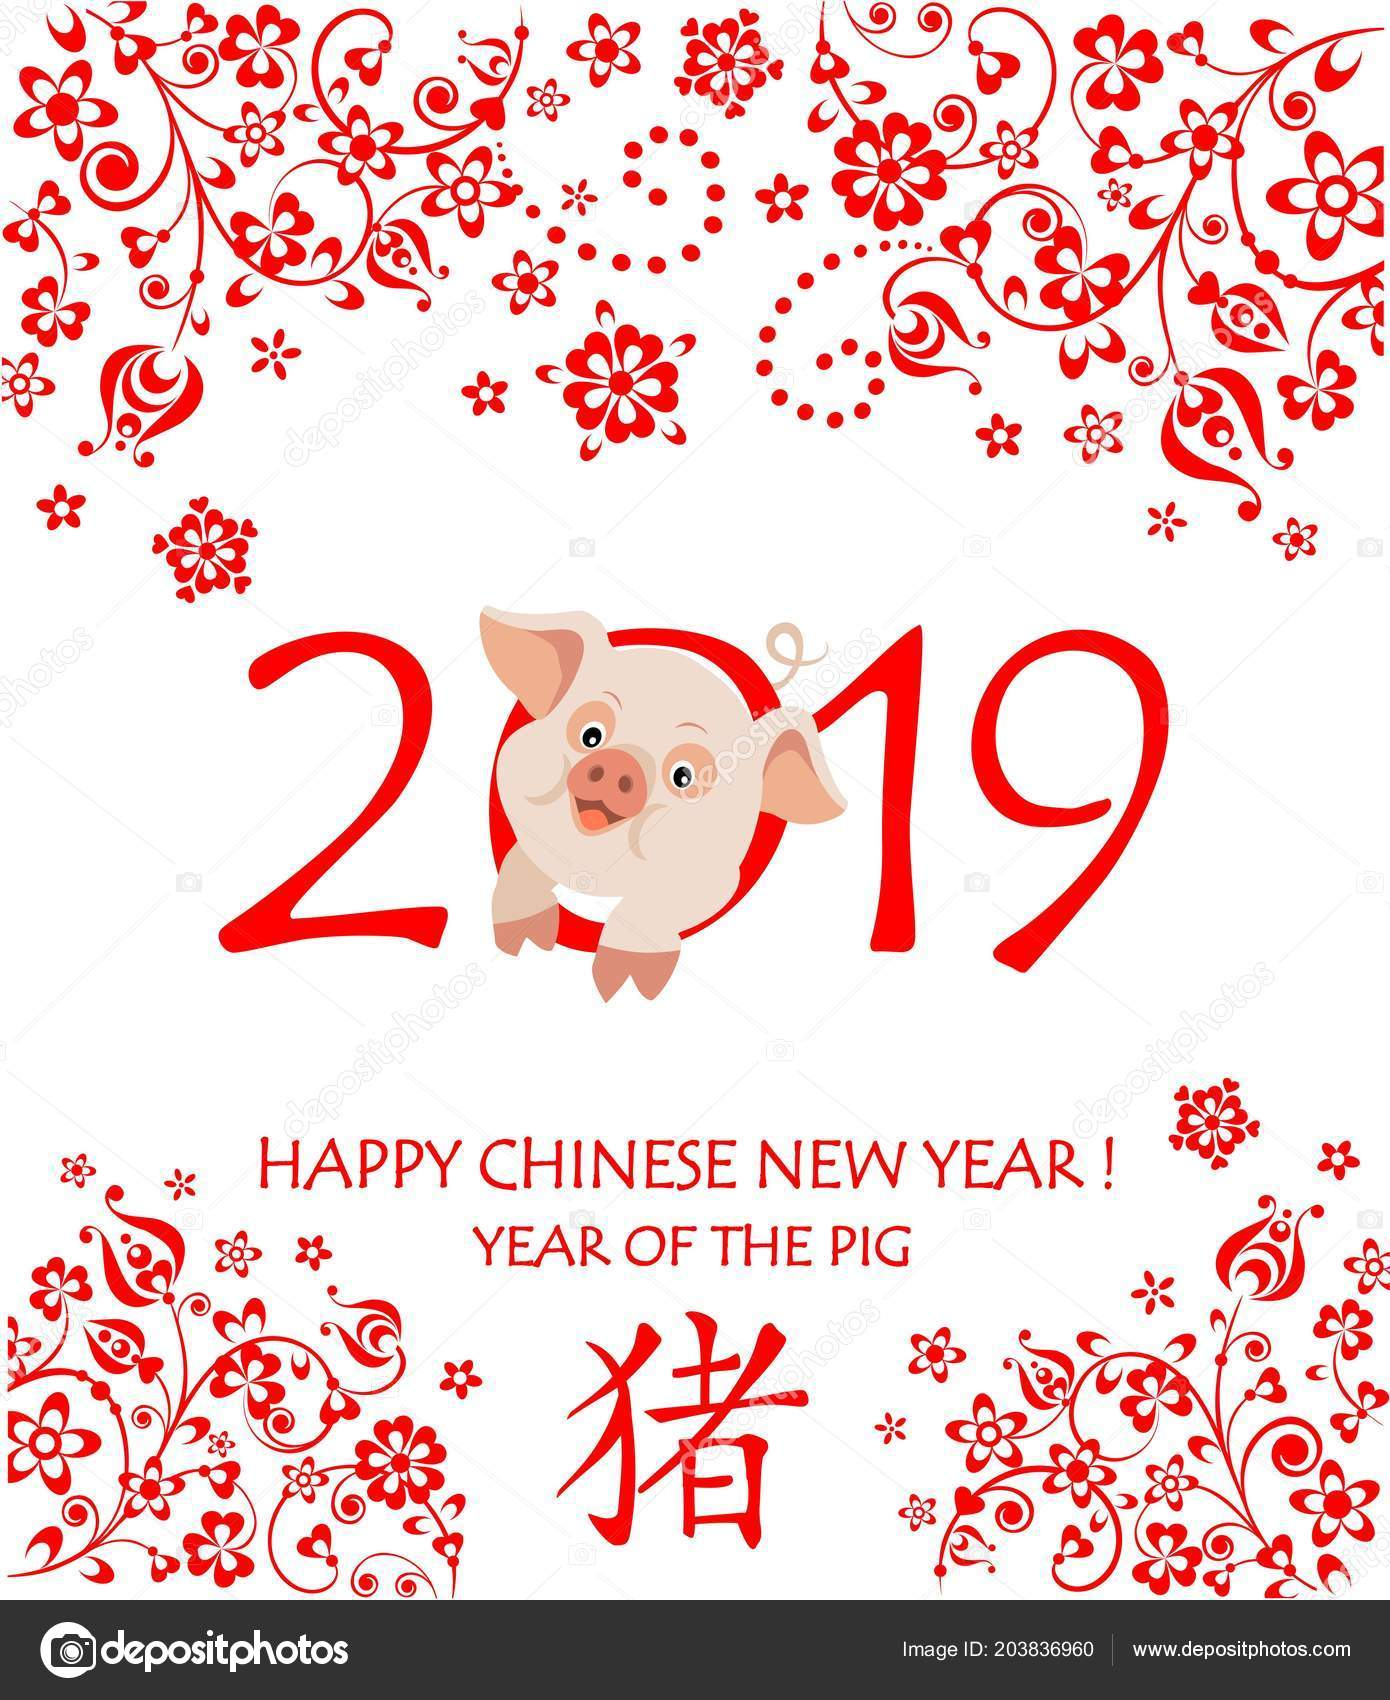 Chinese New Year 2019. Traditions and wishes 7